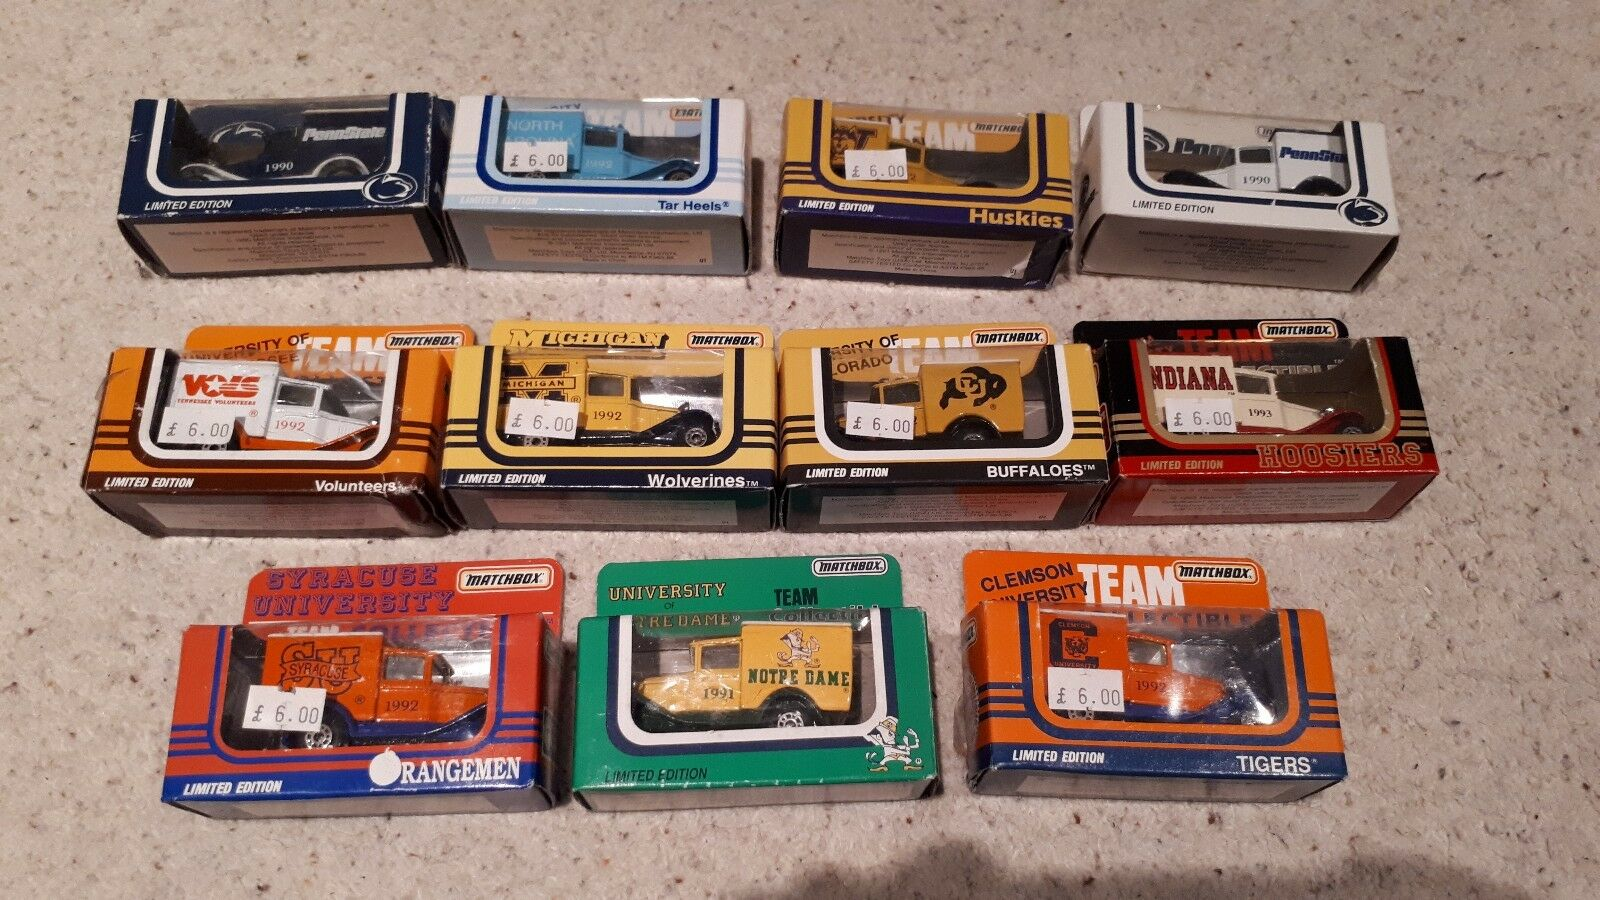 Matchbox Die Cast Vans x 11 - US University's College's - All Boxed 1991